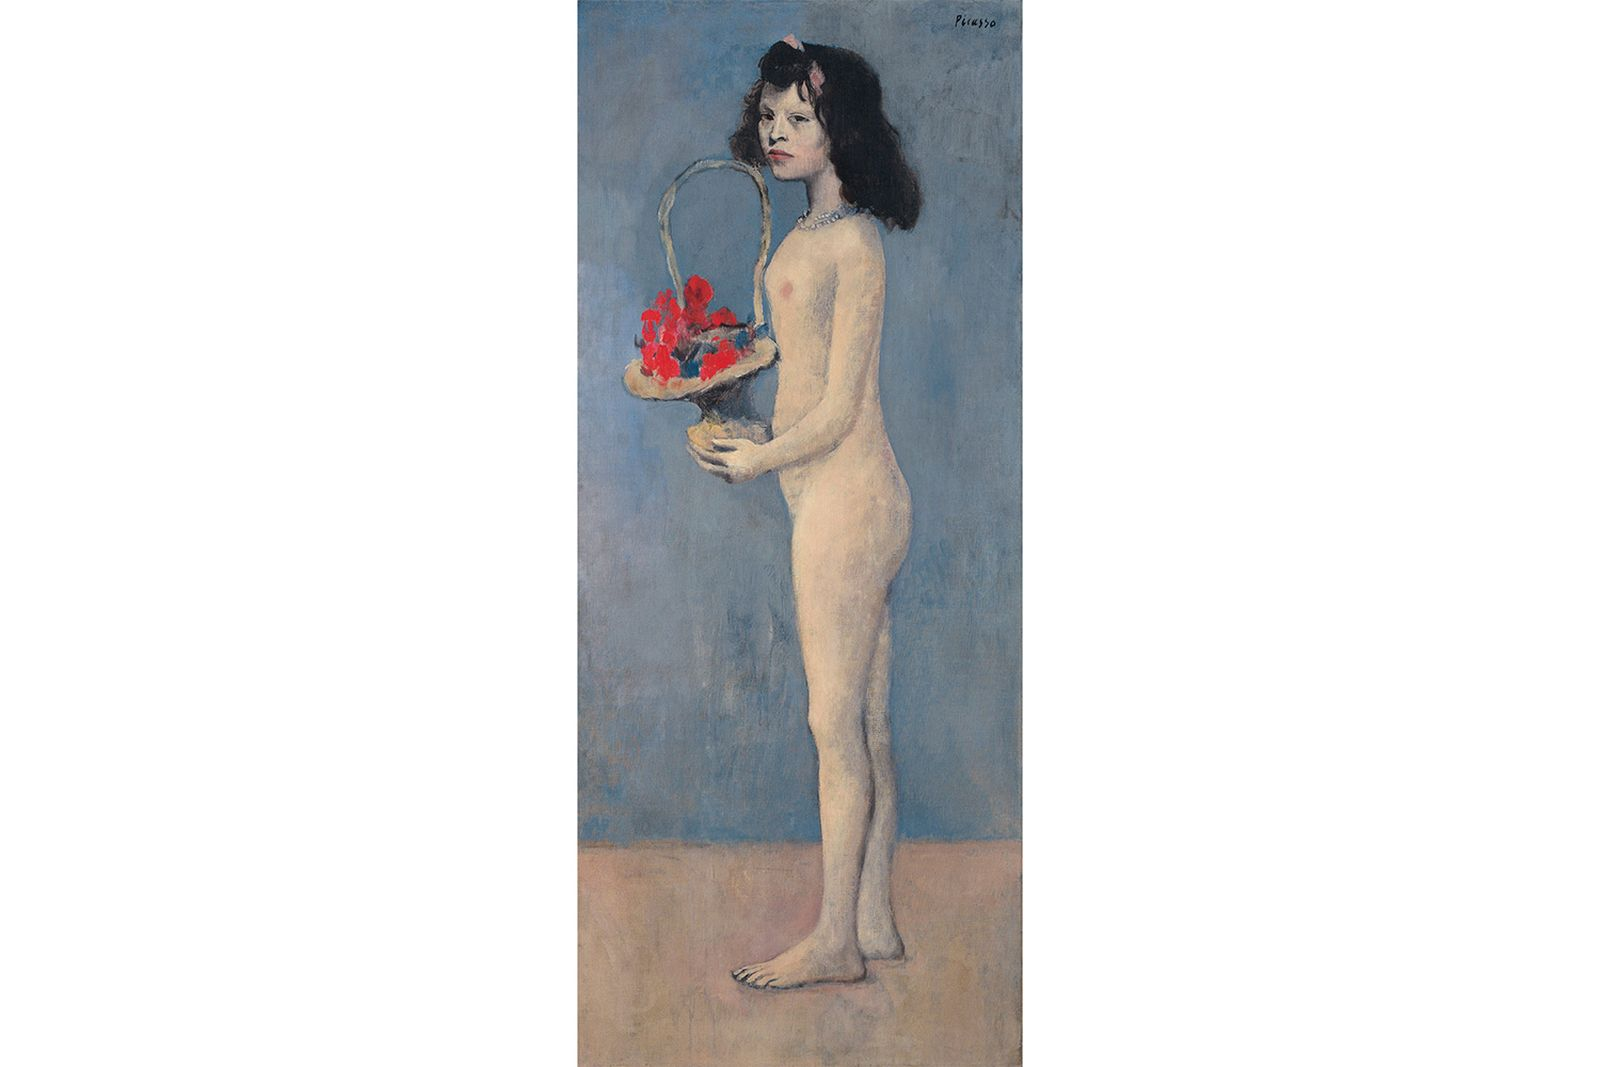 picasso-young-girl-painting-115-million-001